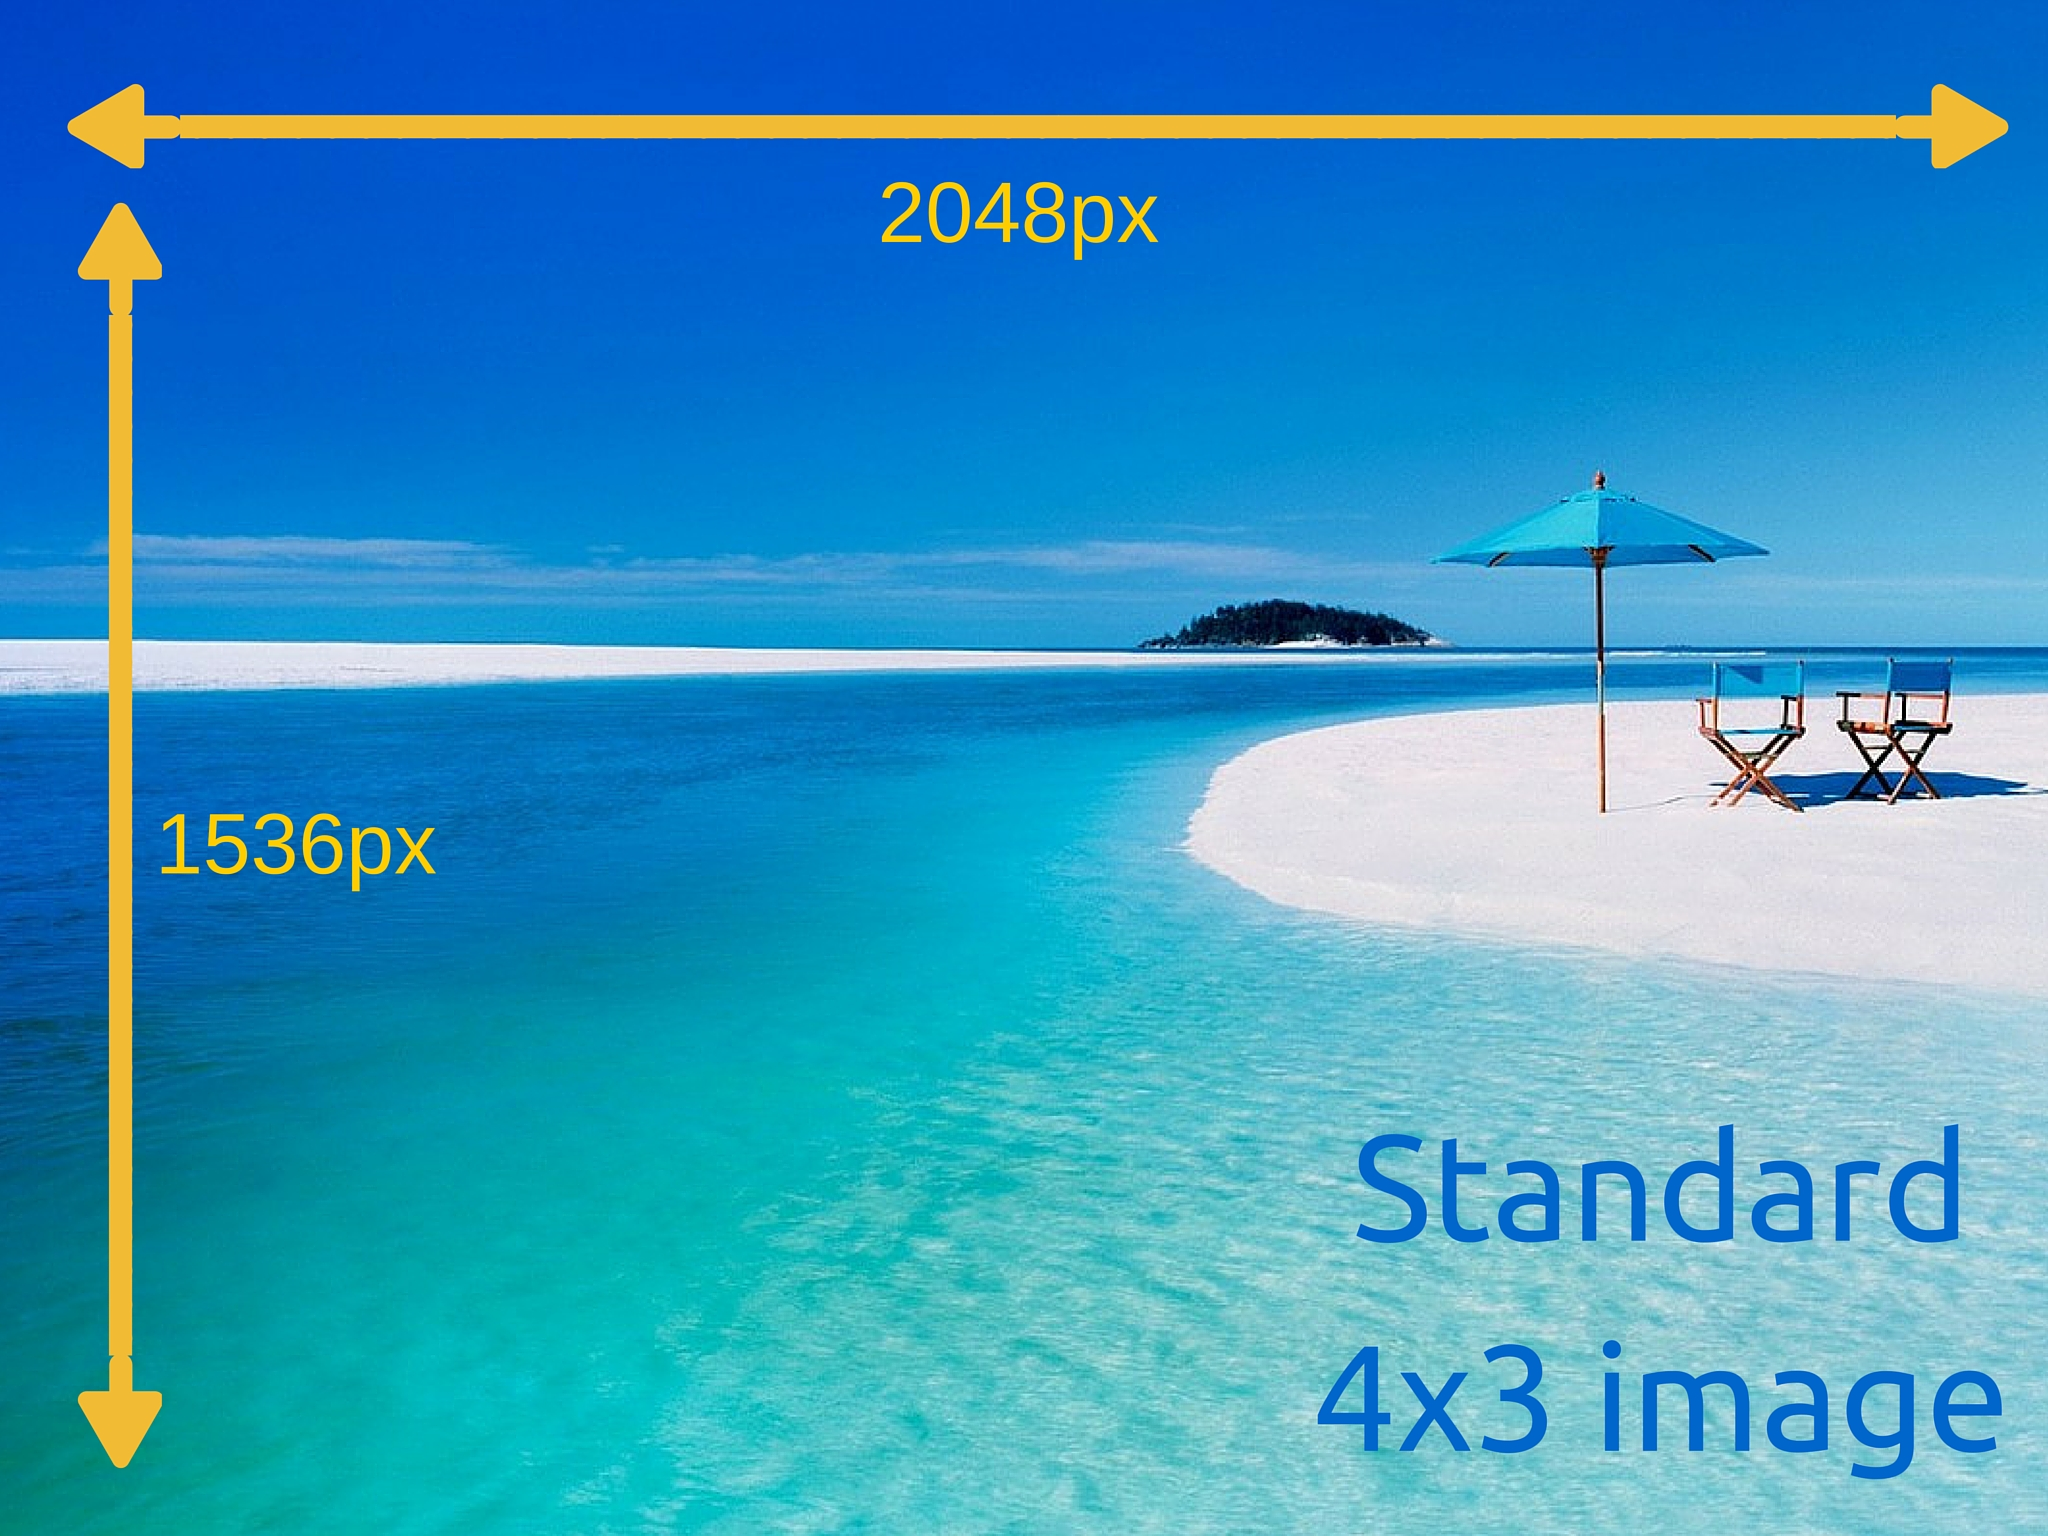 standard image dimensions